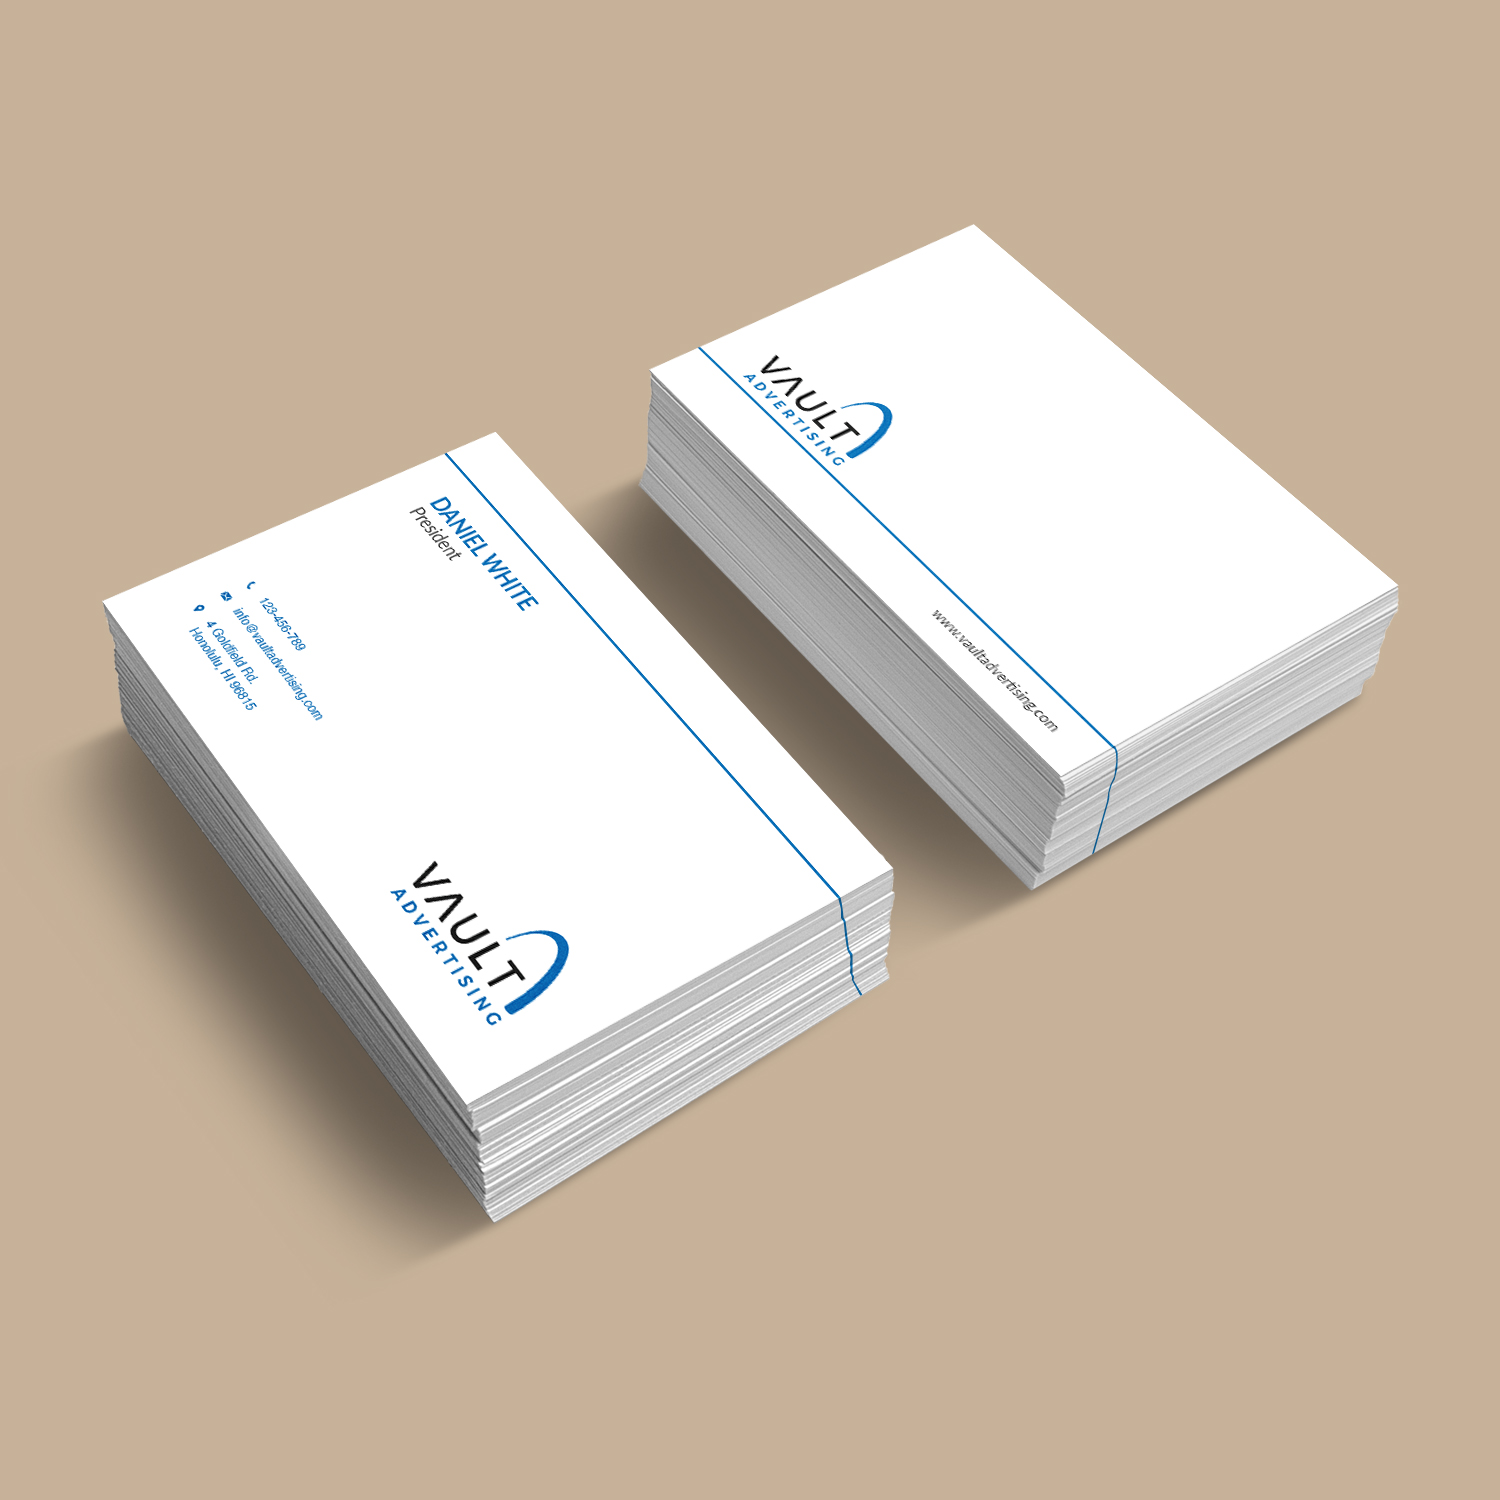 Elegant playful business business card design for a company by business card design by bdesigner9 for this project design 16912383 reheart Image collections